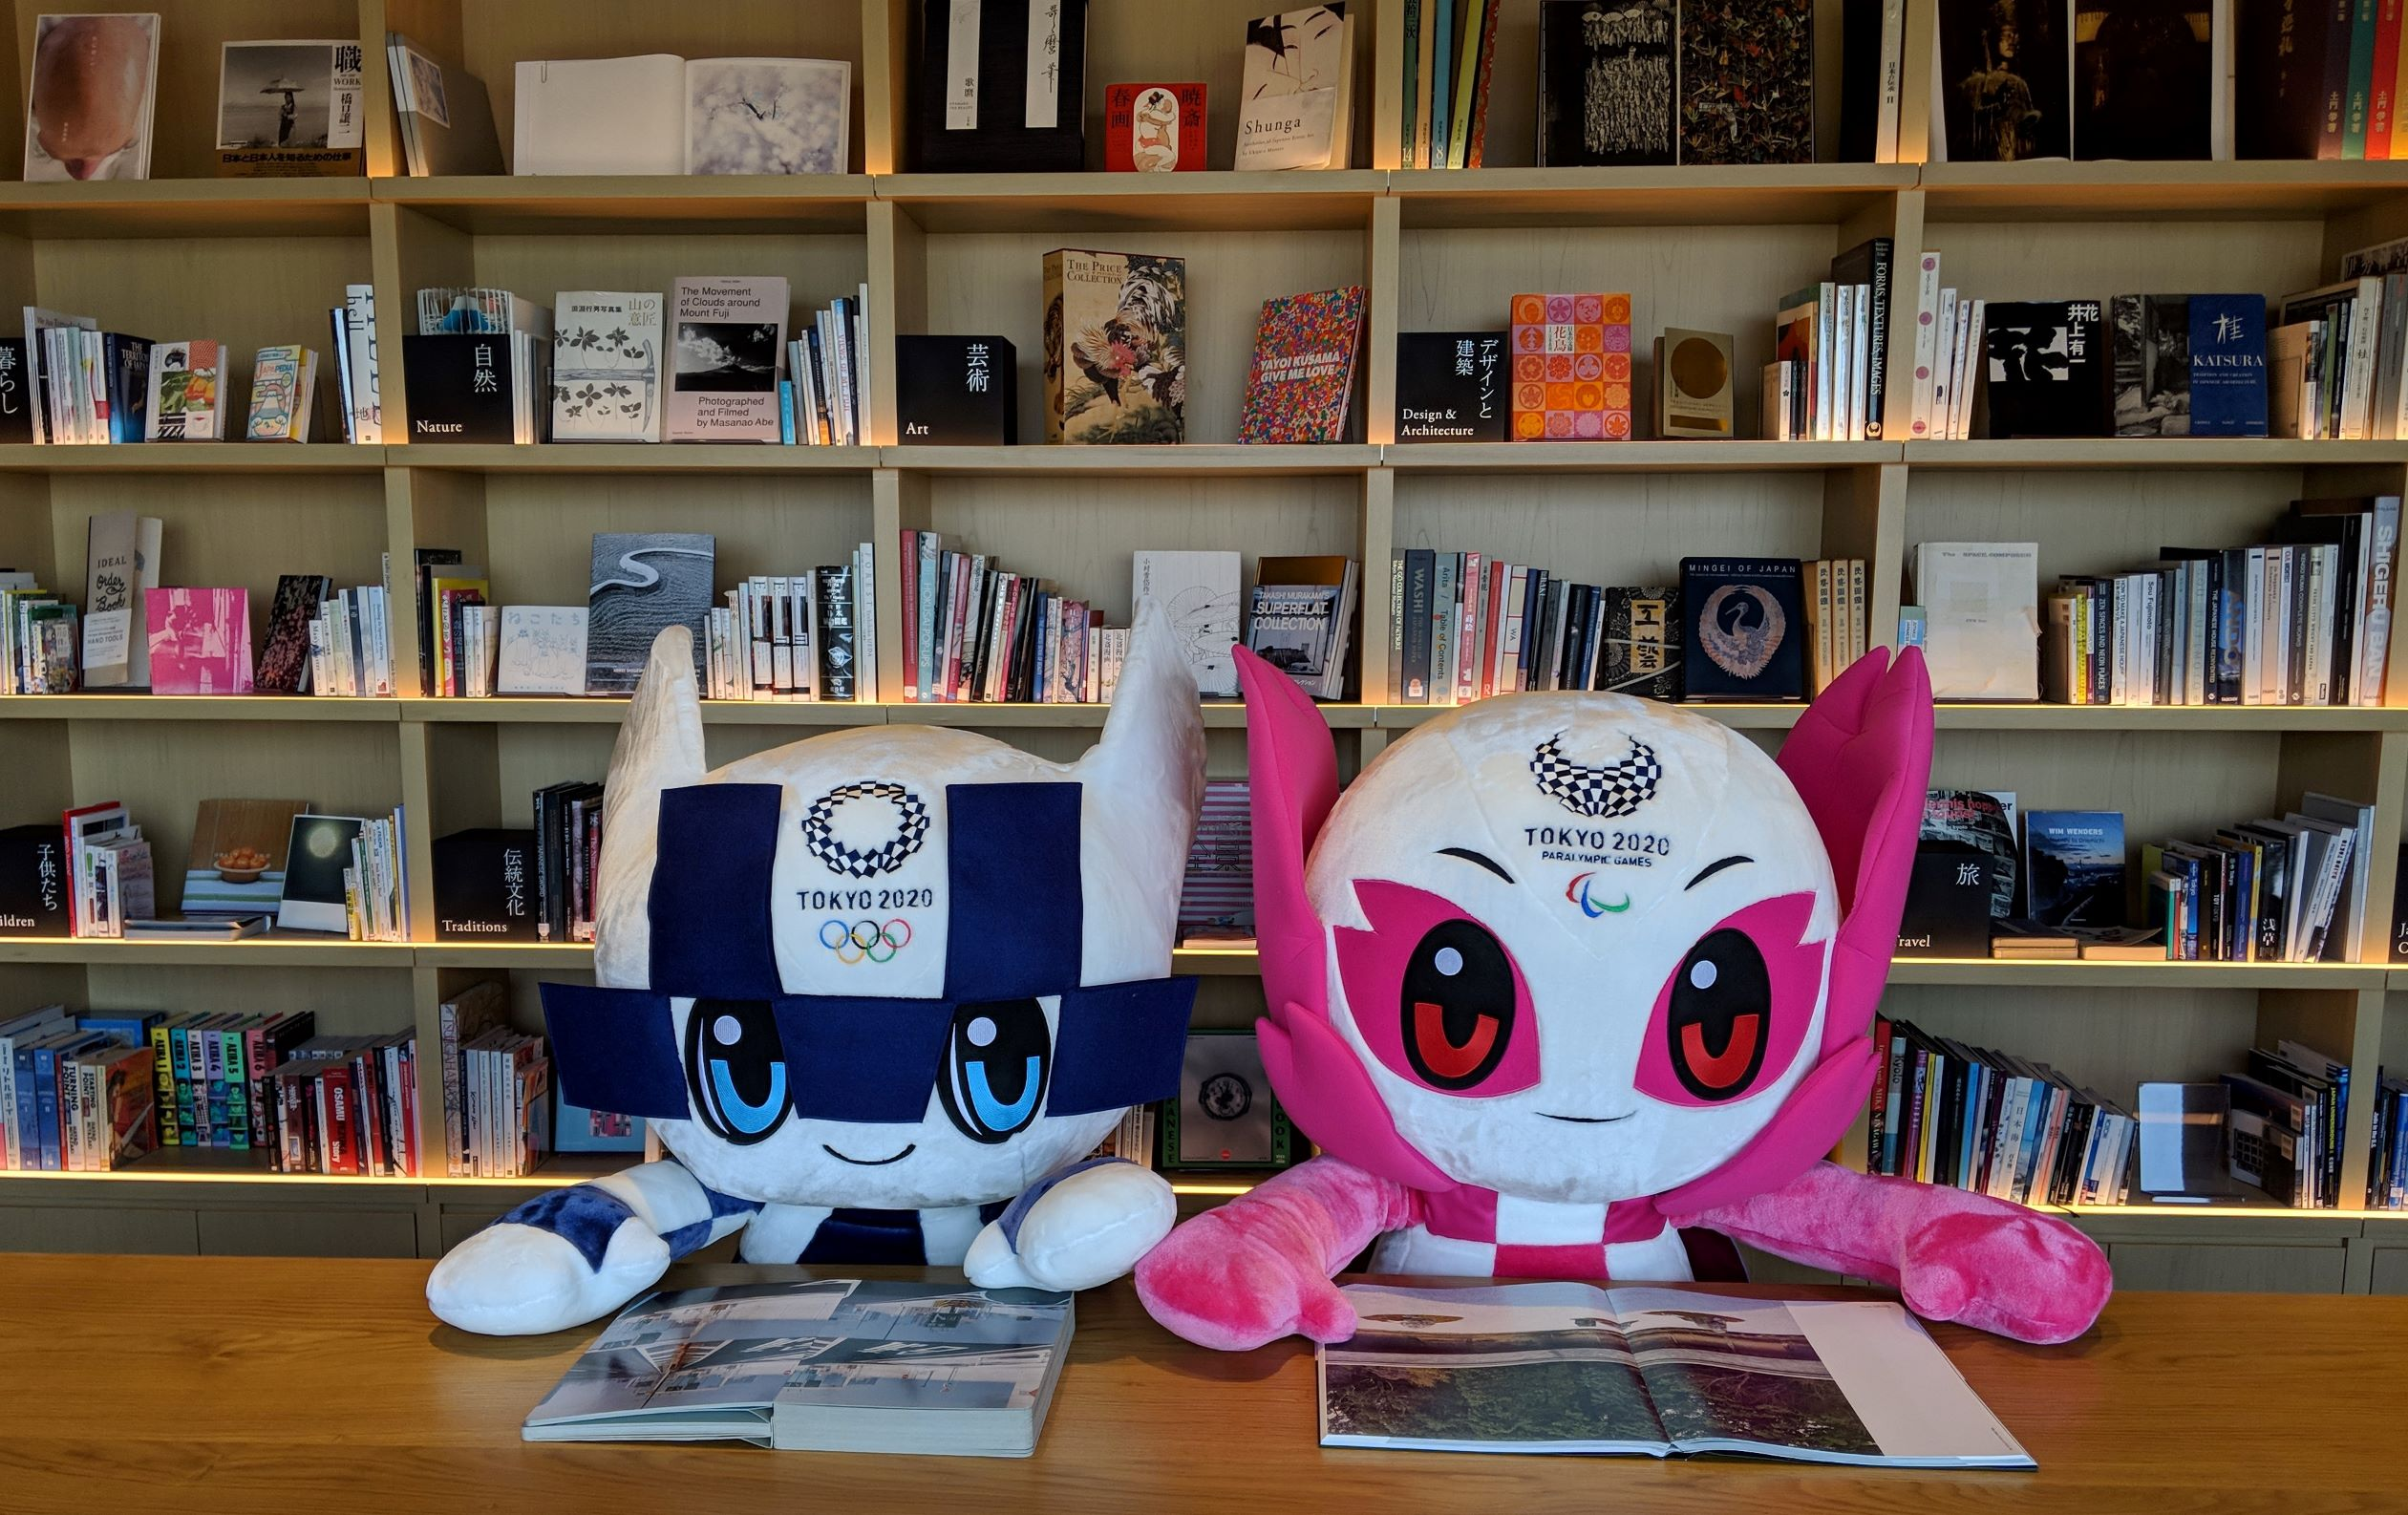 Tokyo 2020 Olympic mascots in JAPAN HOUSE Library